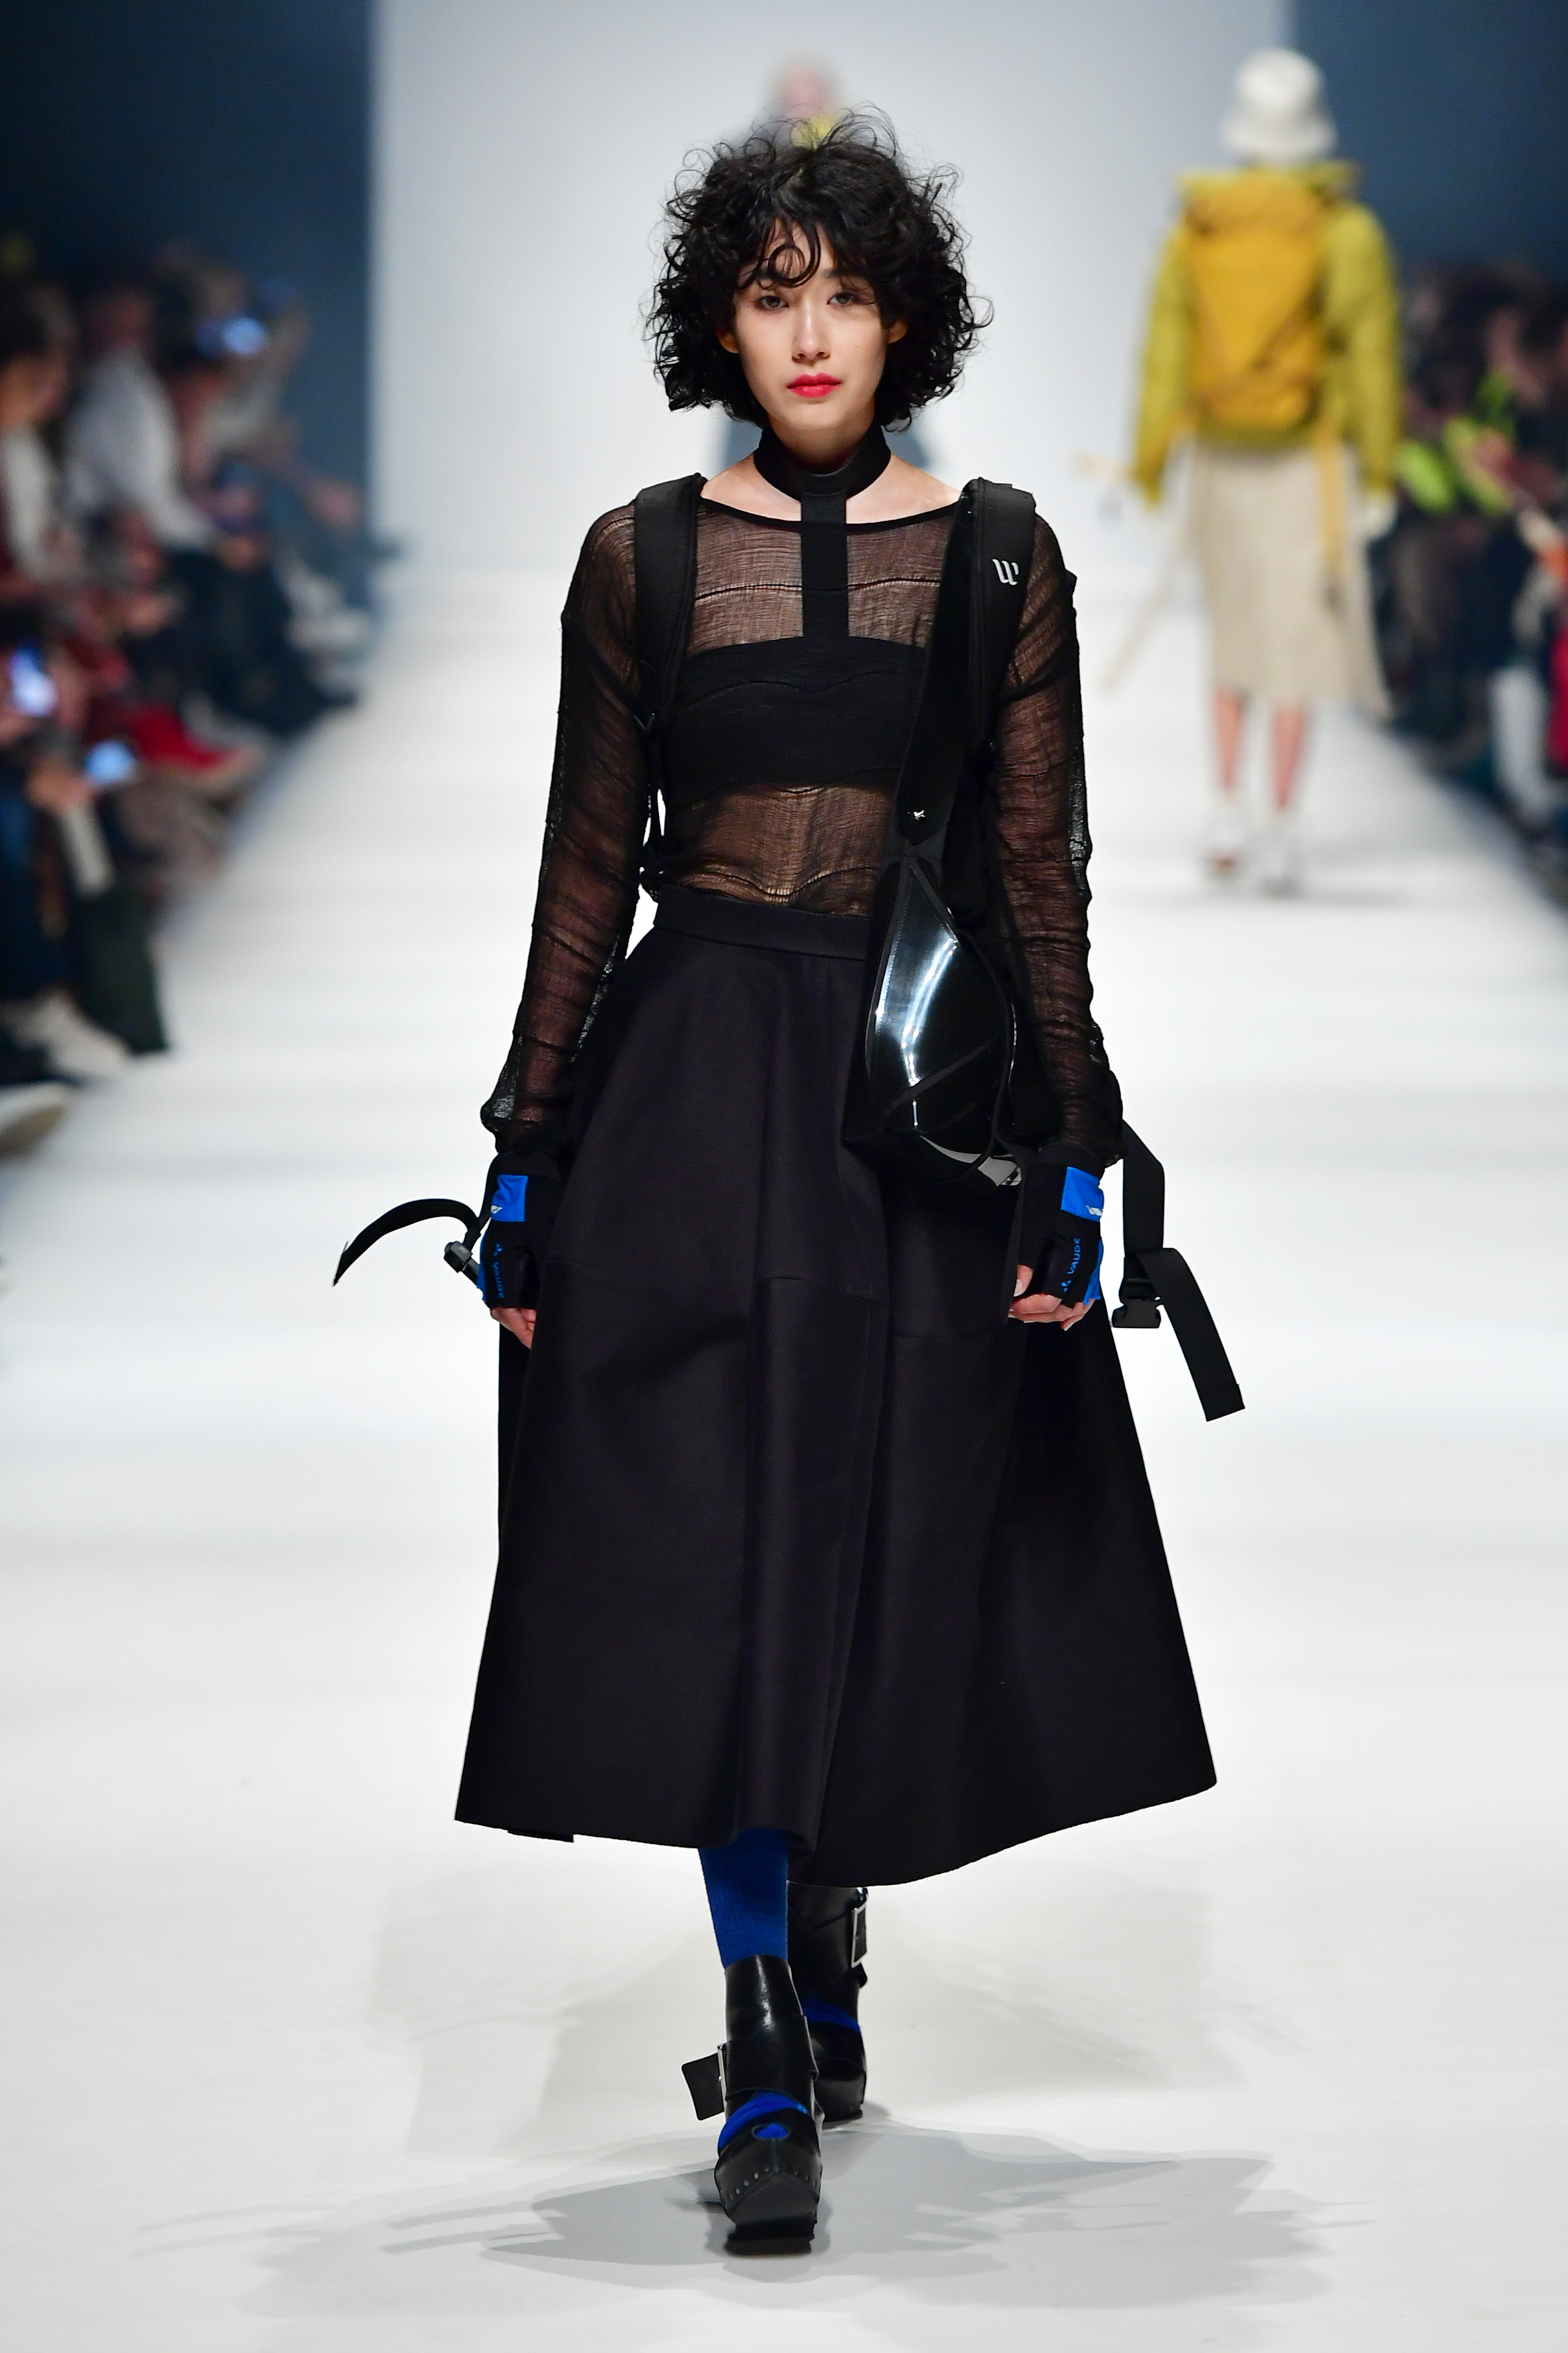 BERLIN, GERMANY - JANUARY 14: A model wearing a top & skirt & bag by Esther Perbandt, bra by Nakt, backpack by Wayks, gloves by Vaude, socks by Falke and shoes by Esther Perbandt X Trippen walks the runway at the Neonyt show during Berlin Fashion Week Autumn/Winter 2020 at Kraftwerk Mitte on January 14, 2020 in Berlin, Germany. (Photo by Alexander Koerner/Getty Images for MBFW)